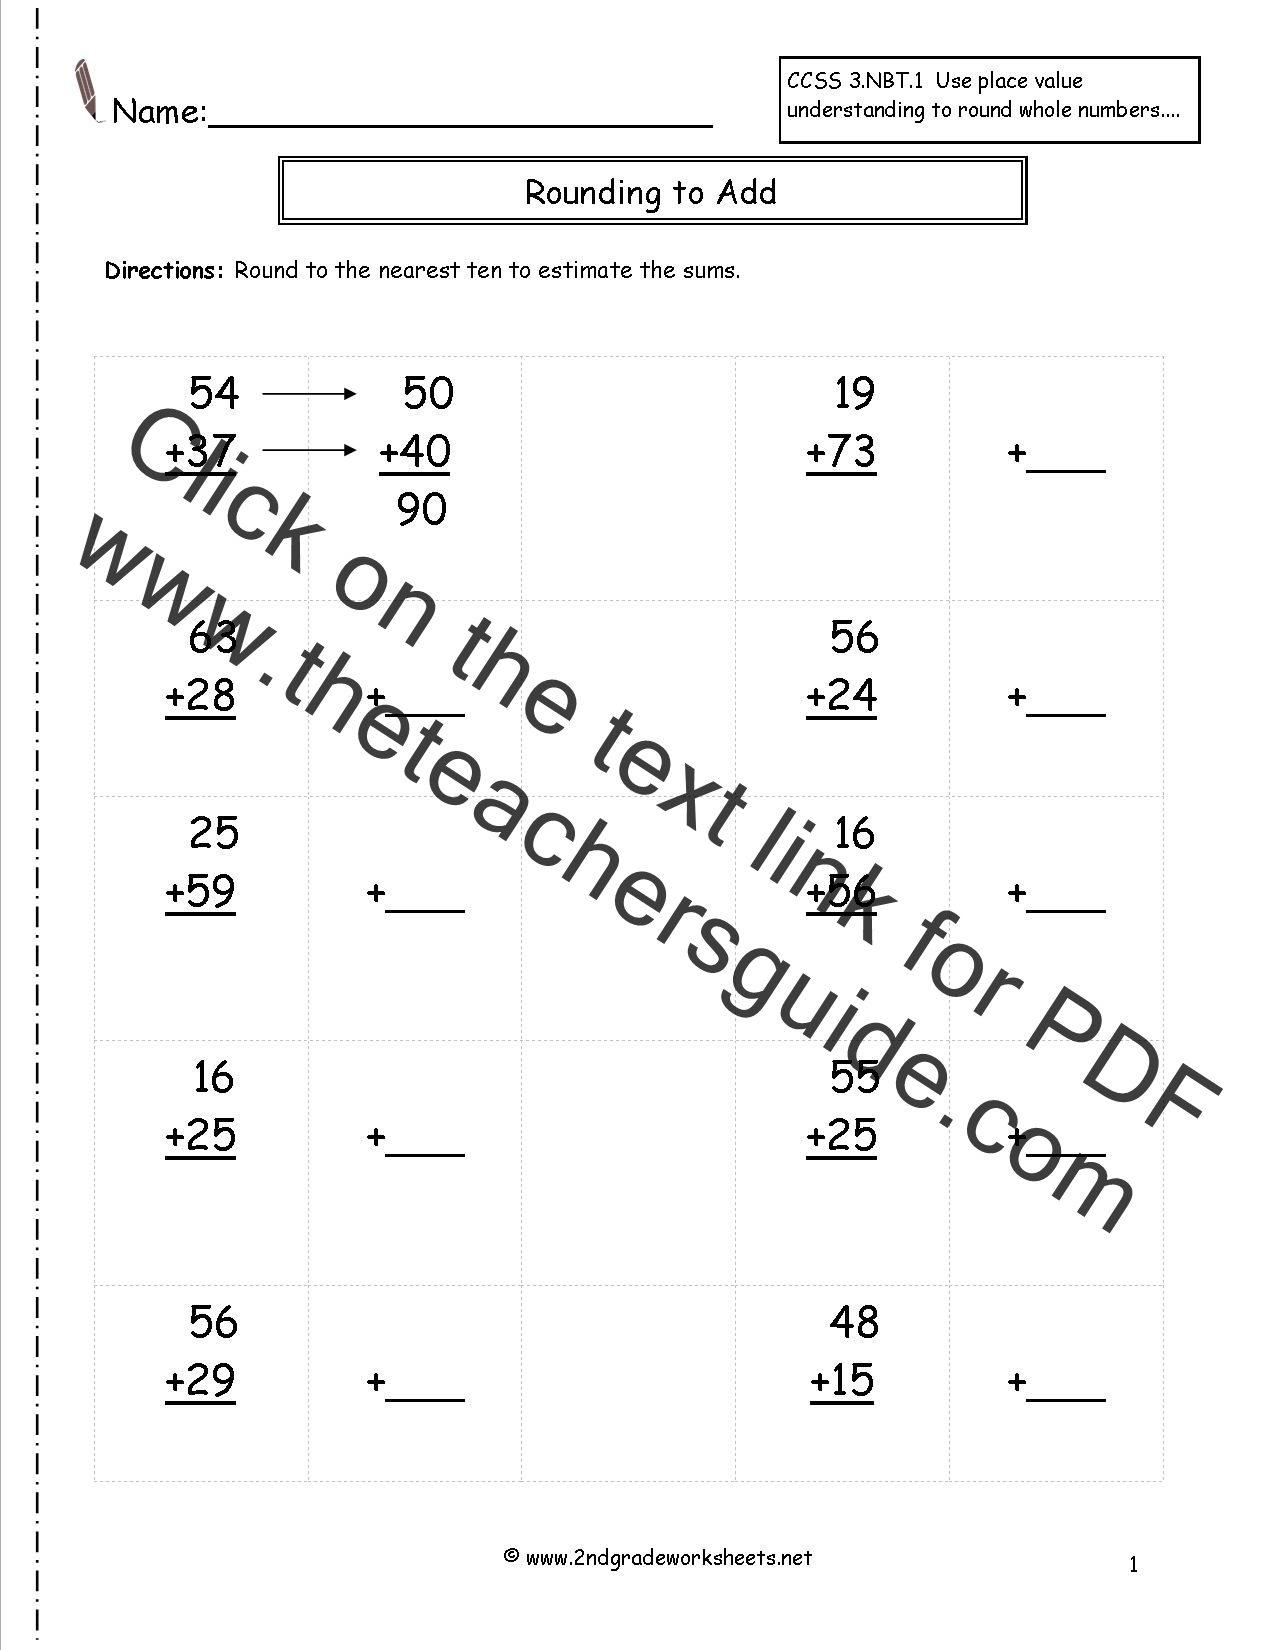 worksheet Rounding To Nearest Ten Worksheet rounding whole numbers worksheets to estimate the sum worksheet rounding